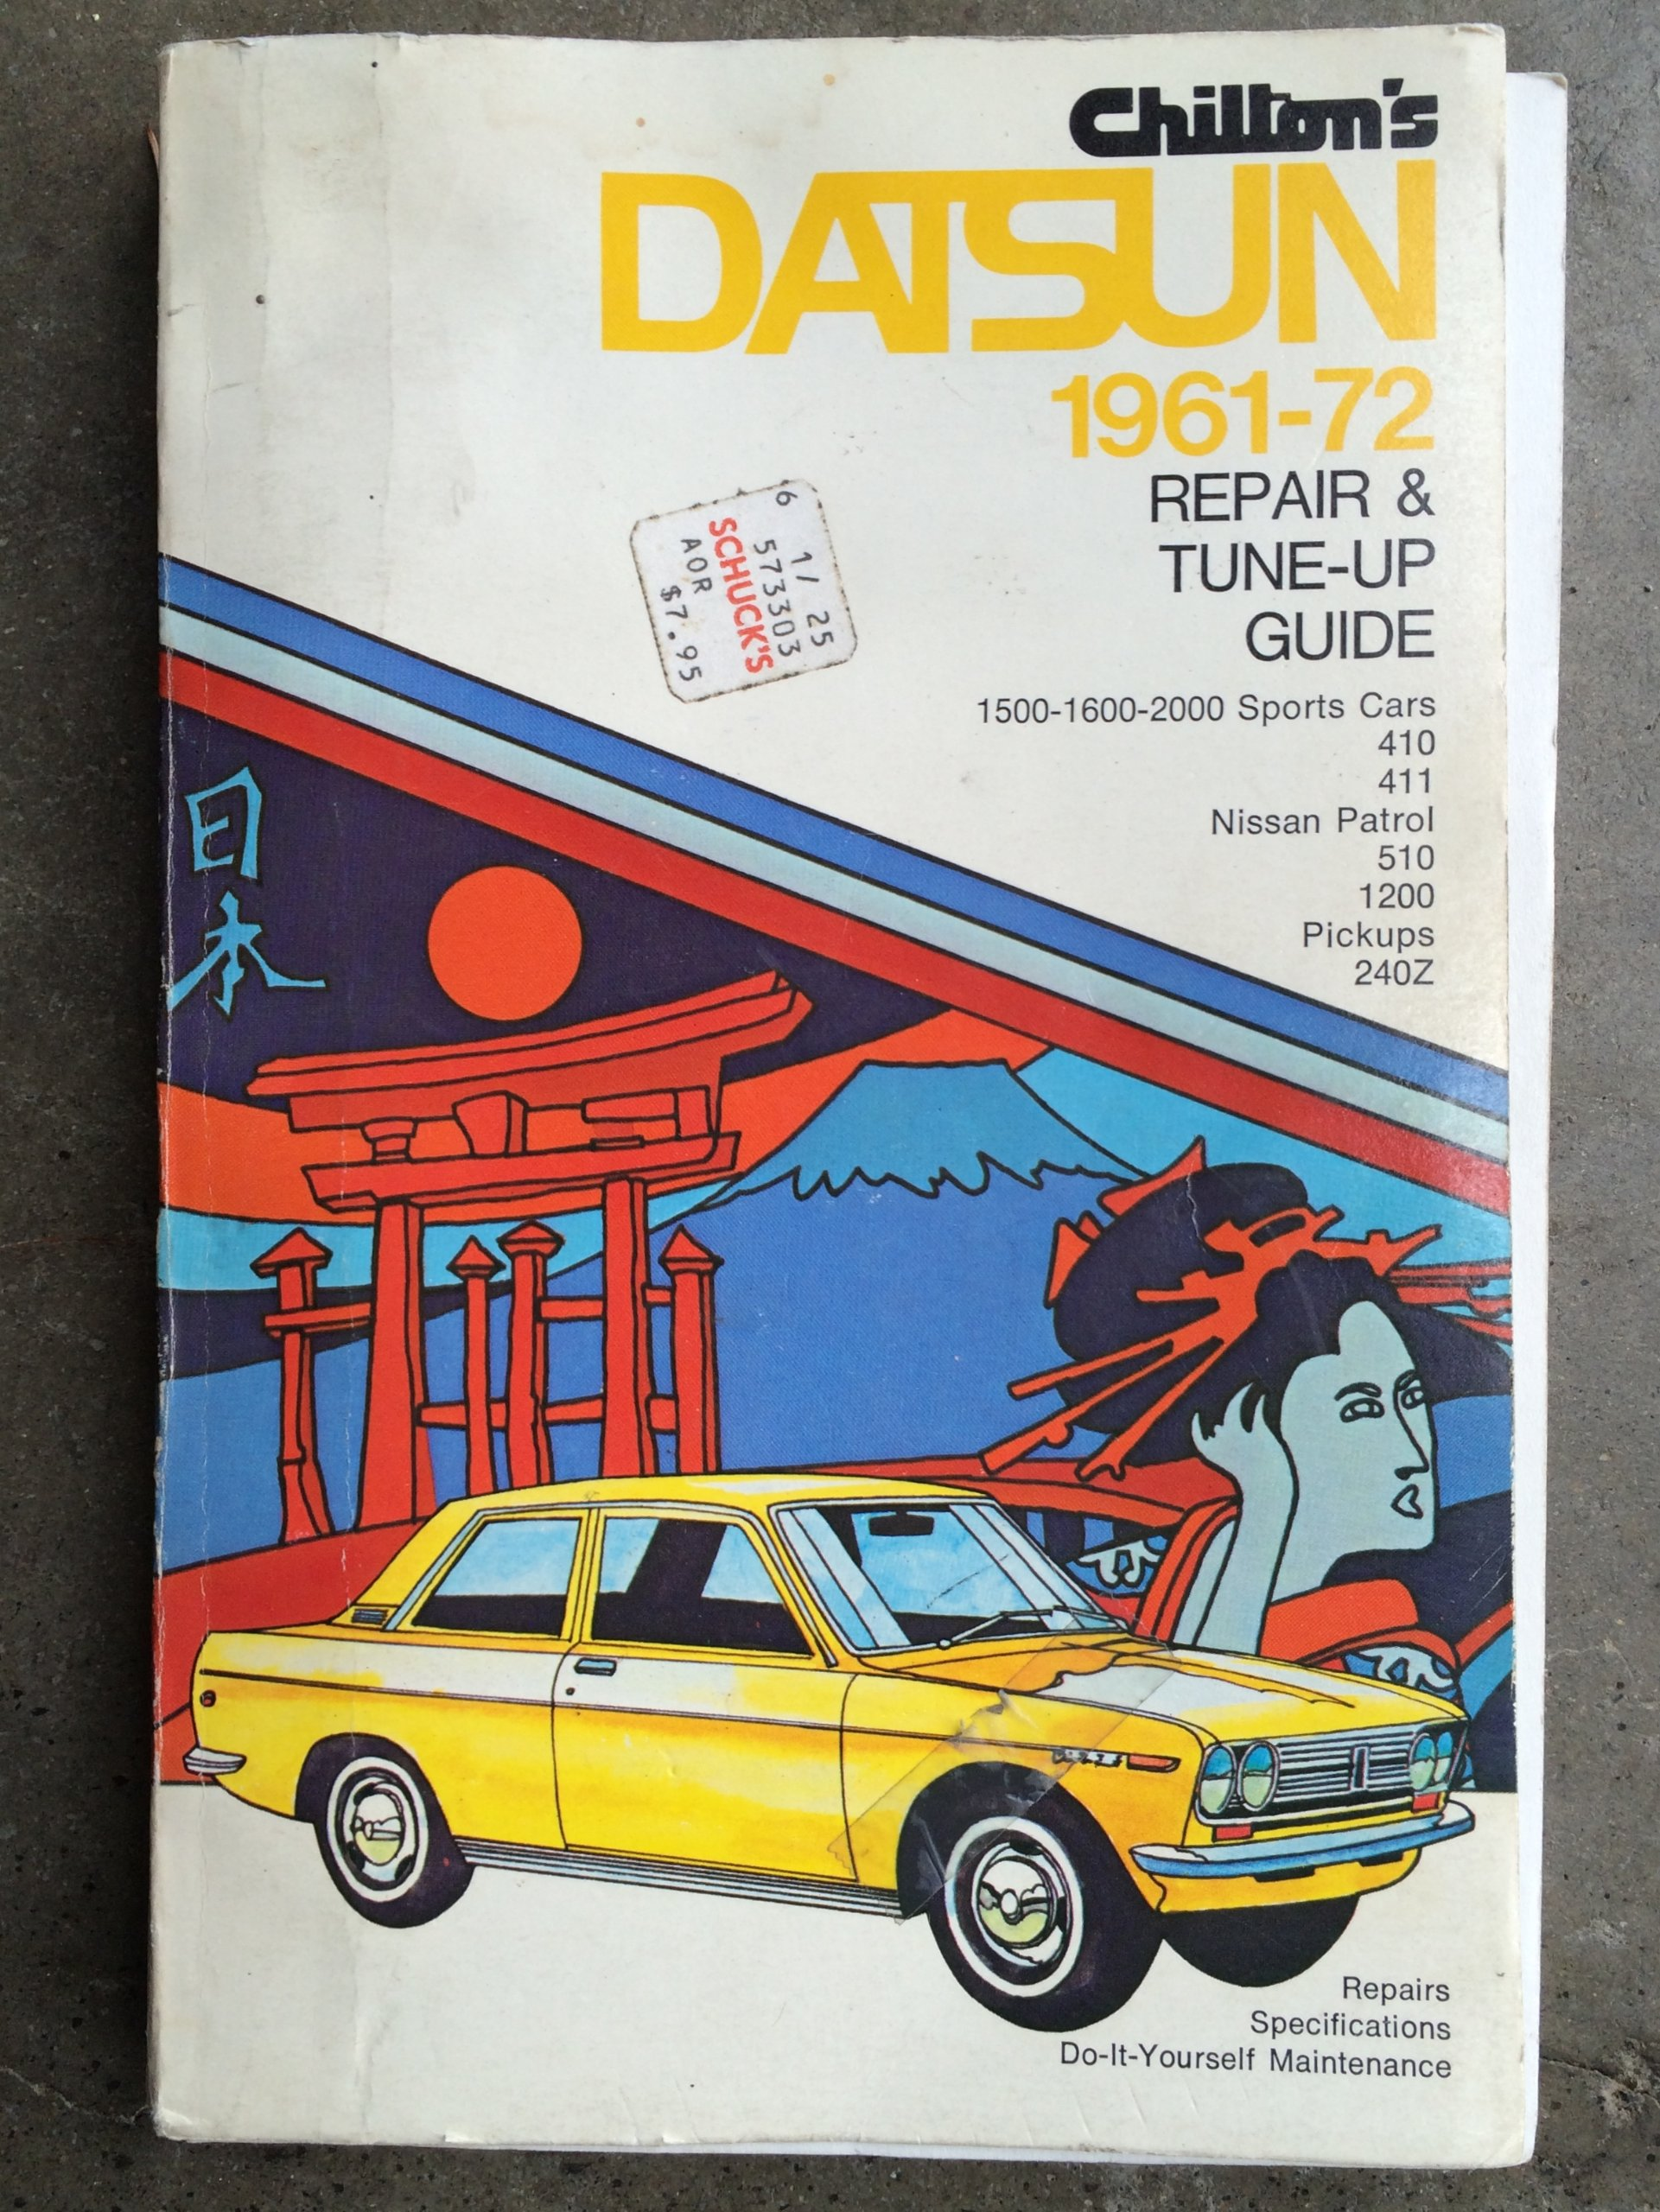 Chilton's Repair and Tune-Up Guide - Datsun 1961 to 1972: 1500-1600-2000  Sports Cars, 410, 411, Nissan Patrol, 510, 1200, Pickups, 240Z: Chilton  Book ...